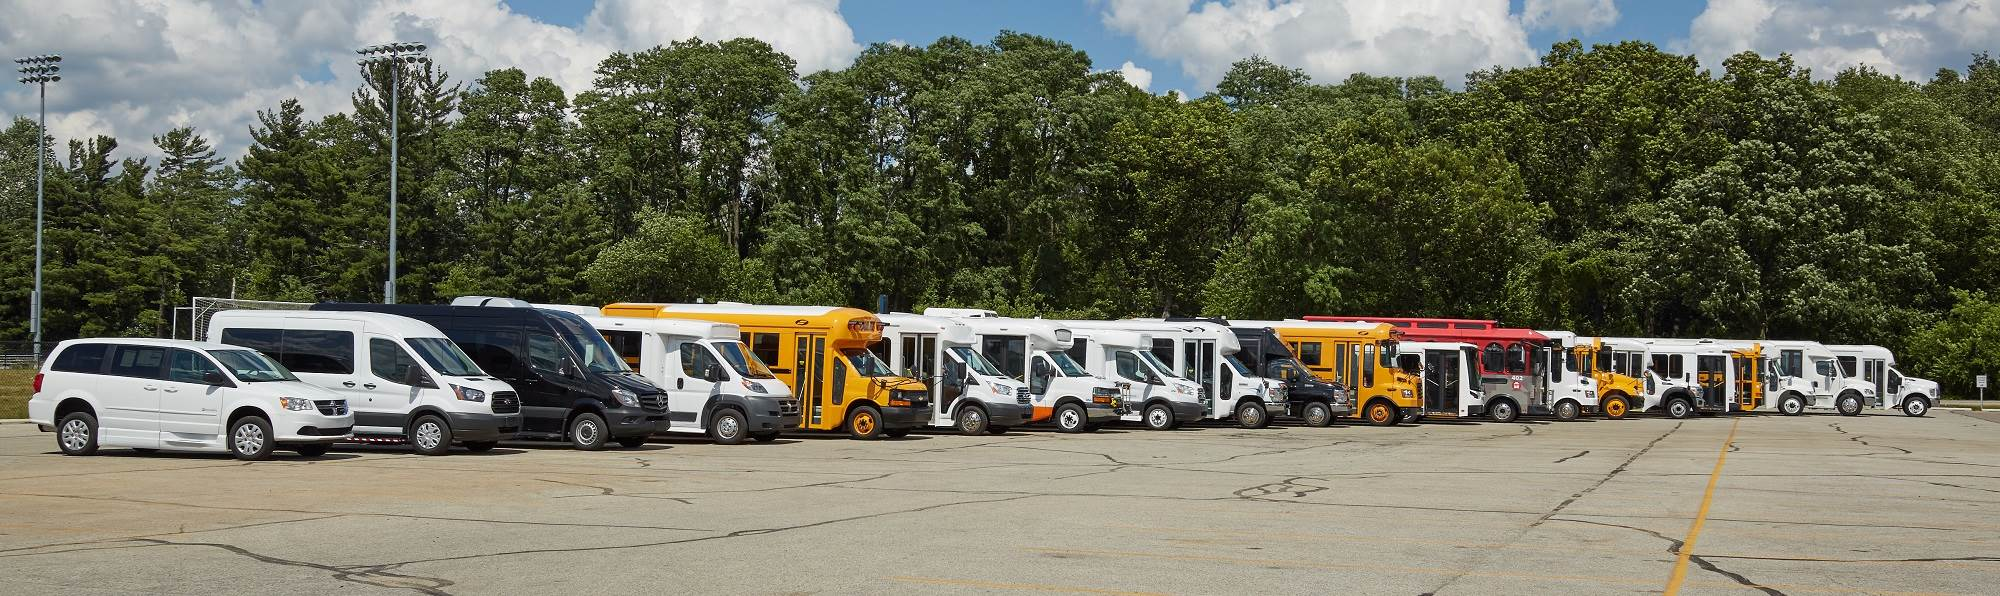 nations largest bus dealership